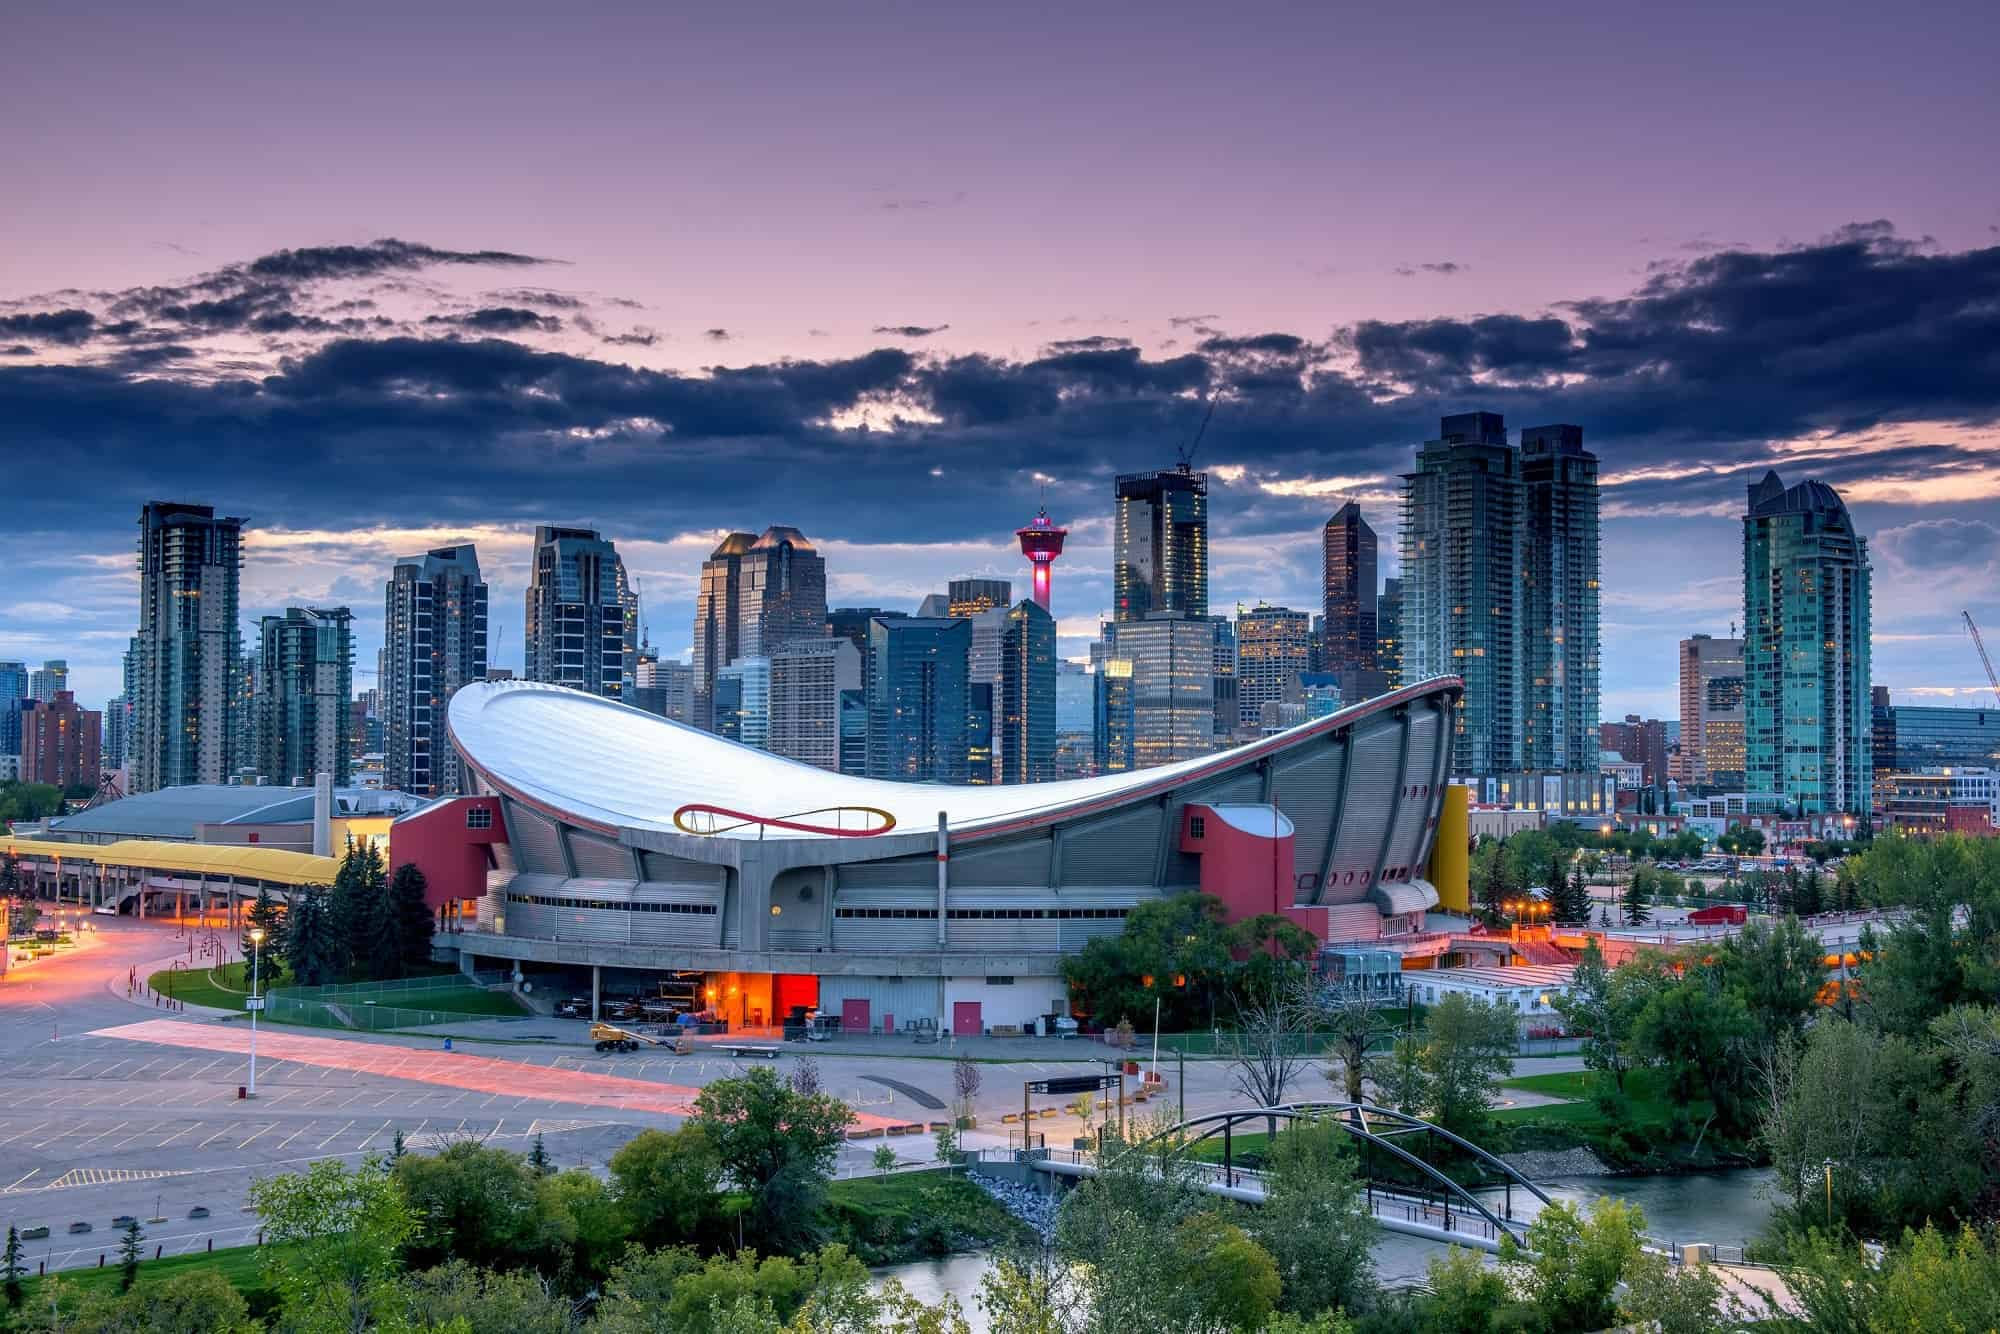 Family Friendly Calgary Attractions and Lodging